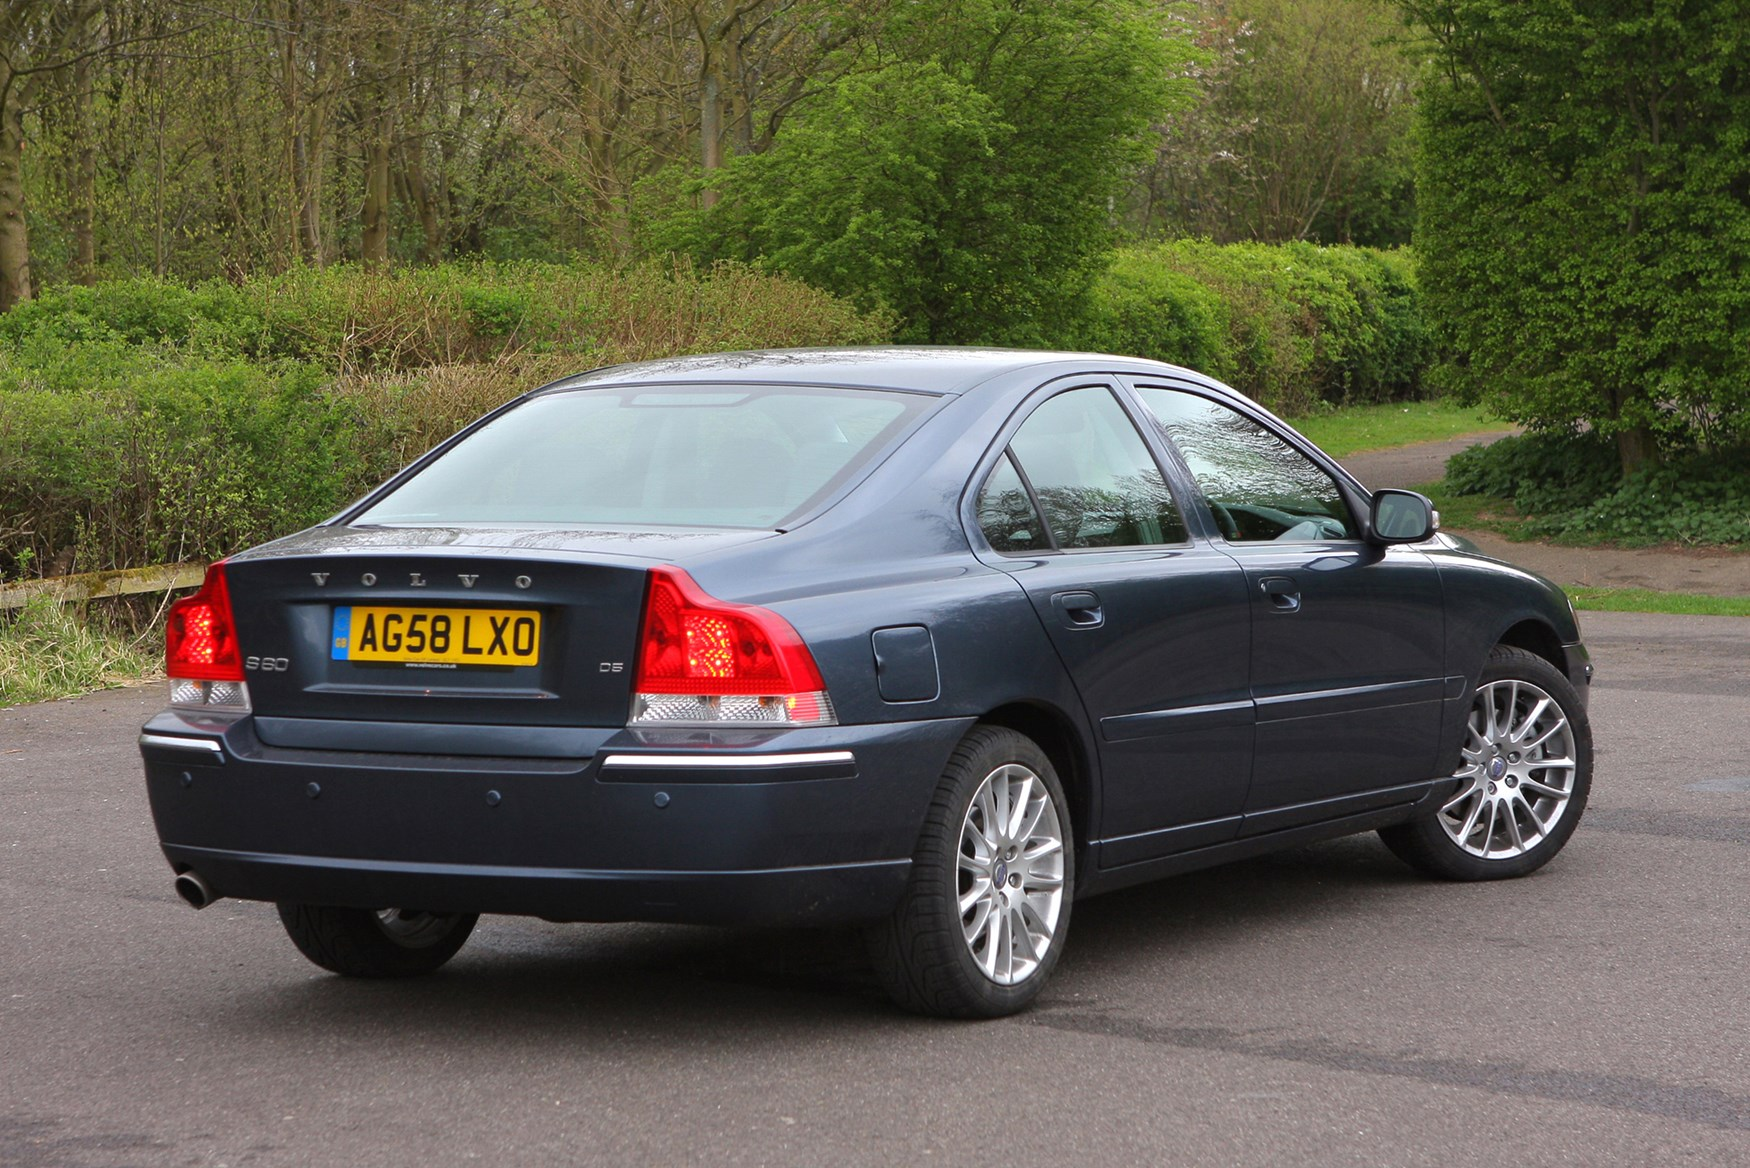 Volvo S60 Saloon Review (2000 - 2008) | Parkers